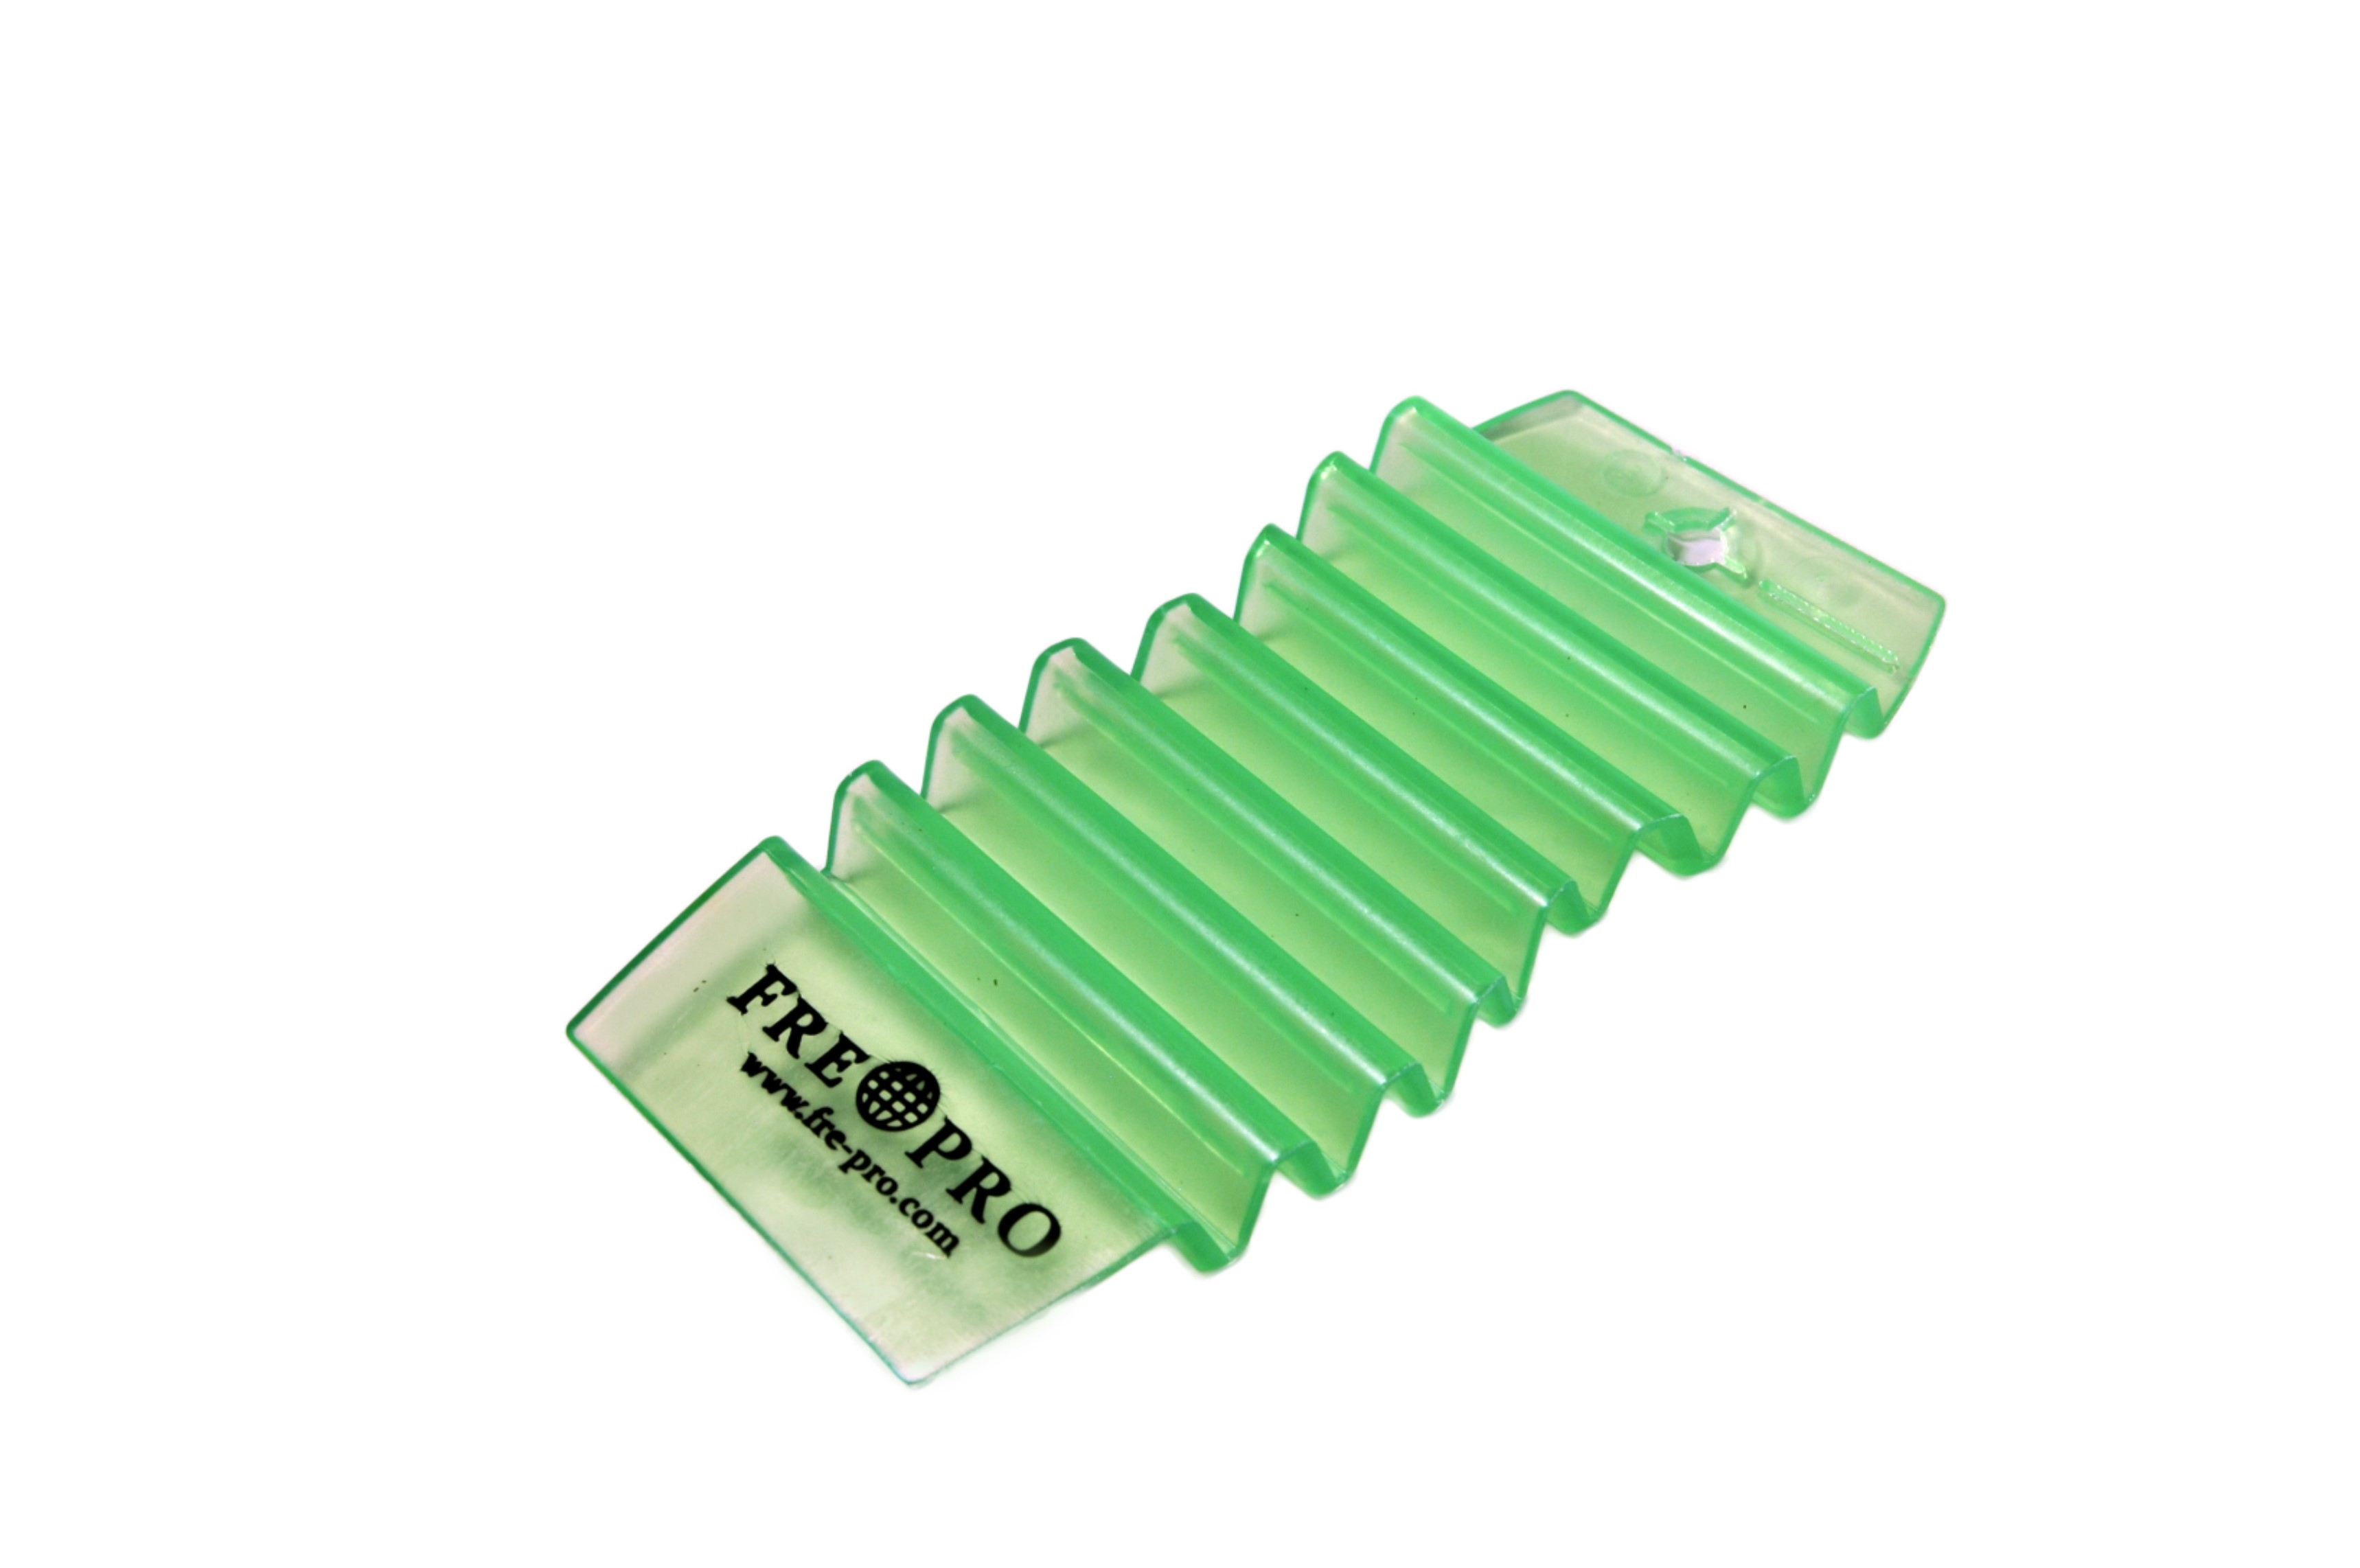 FREPRO Hang Tag - Cucumber Melon